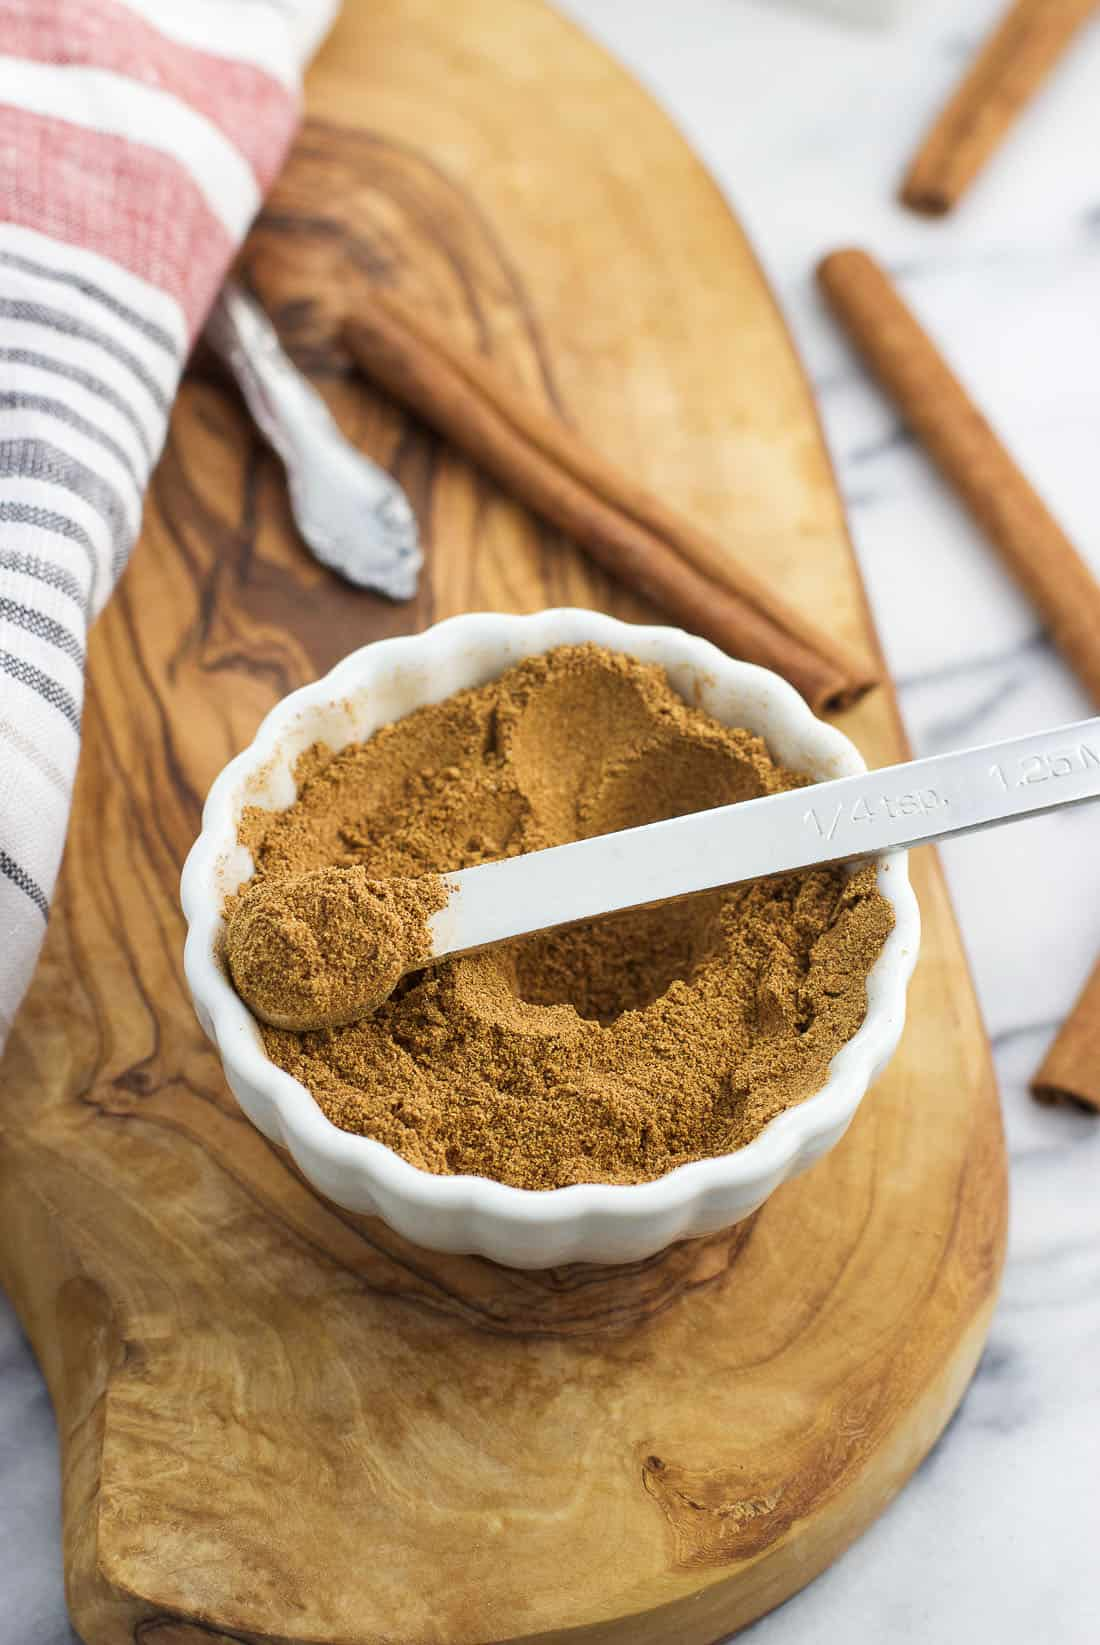 Stirred together chai spice with a quarter-teaspoon resting in the bowl with a heaping quantity of the spice mix in it